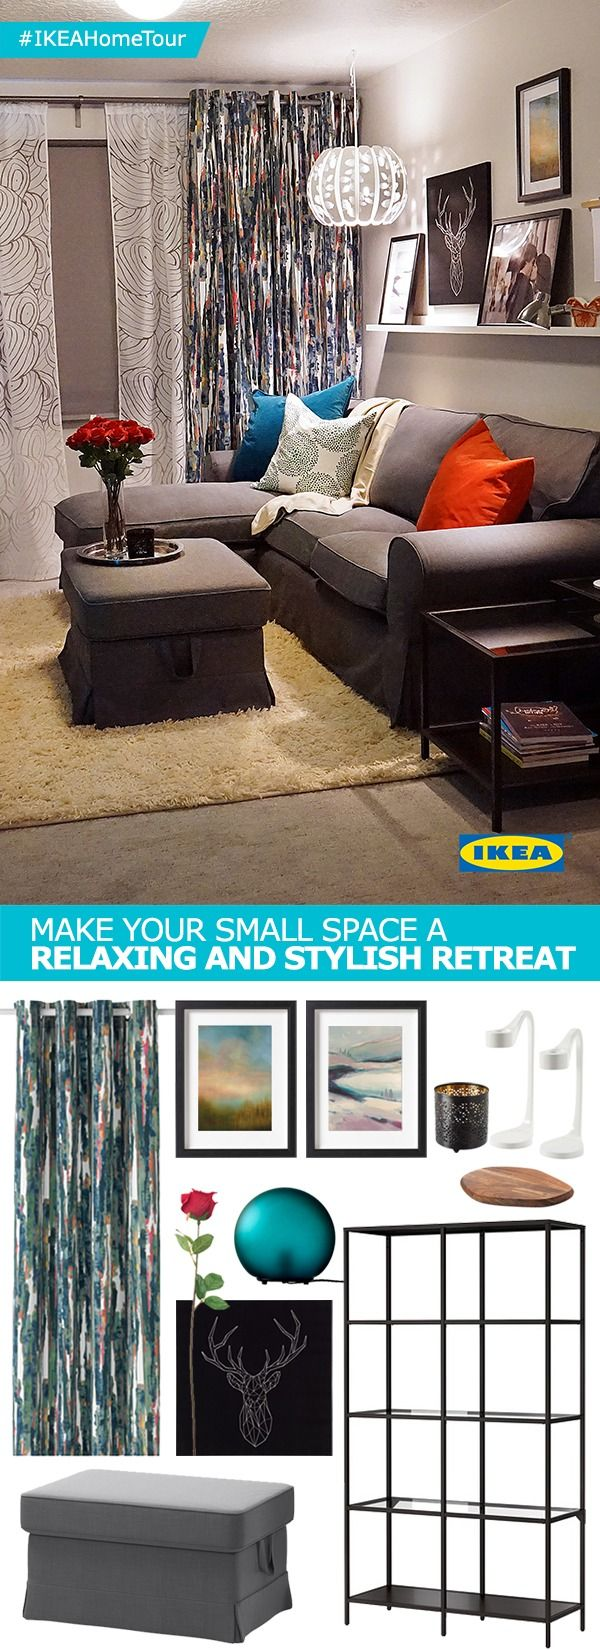 Make Your Small Space A Relaxing And Stylish Retreat With Help From The IKEA Home Tour Squad In Their Latest Makeover Transformed Young